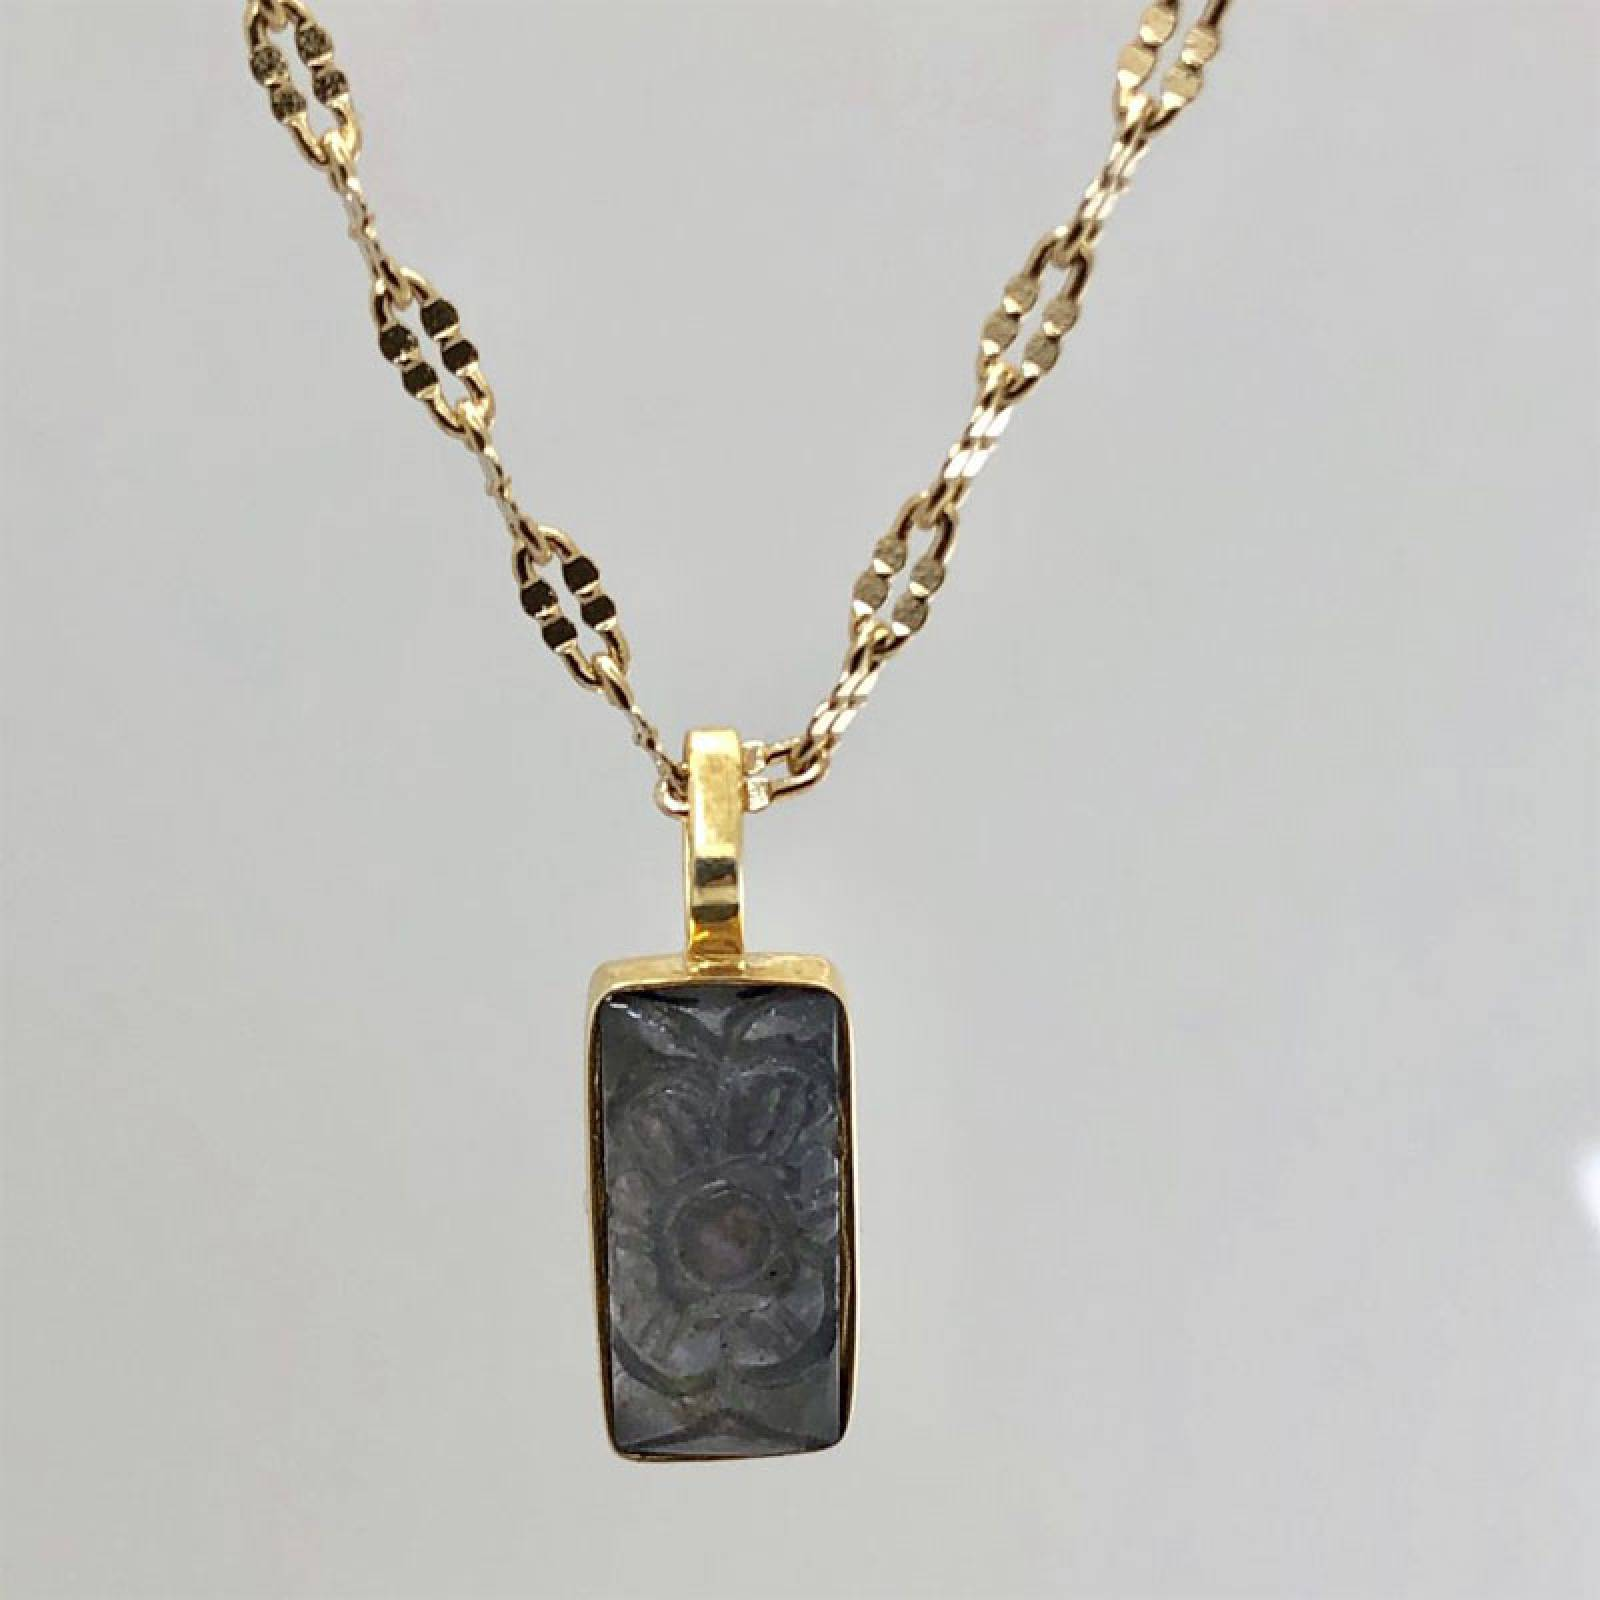 Carved Iolite Pendant With Gold Chain